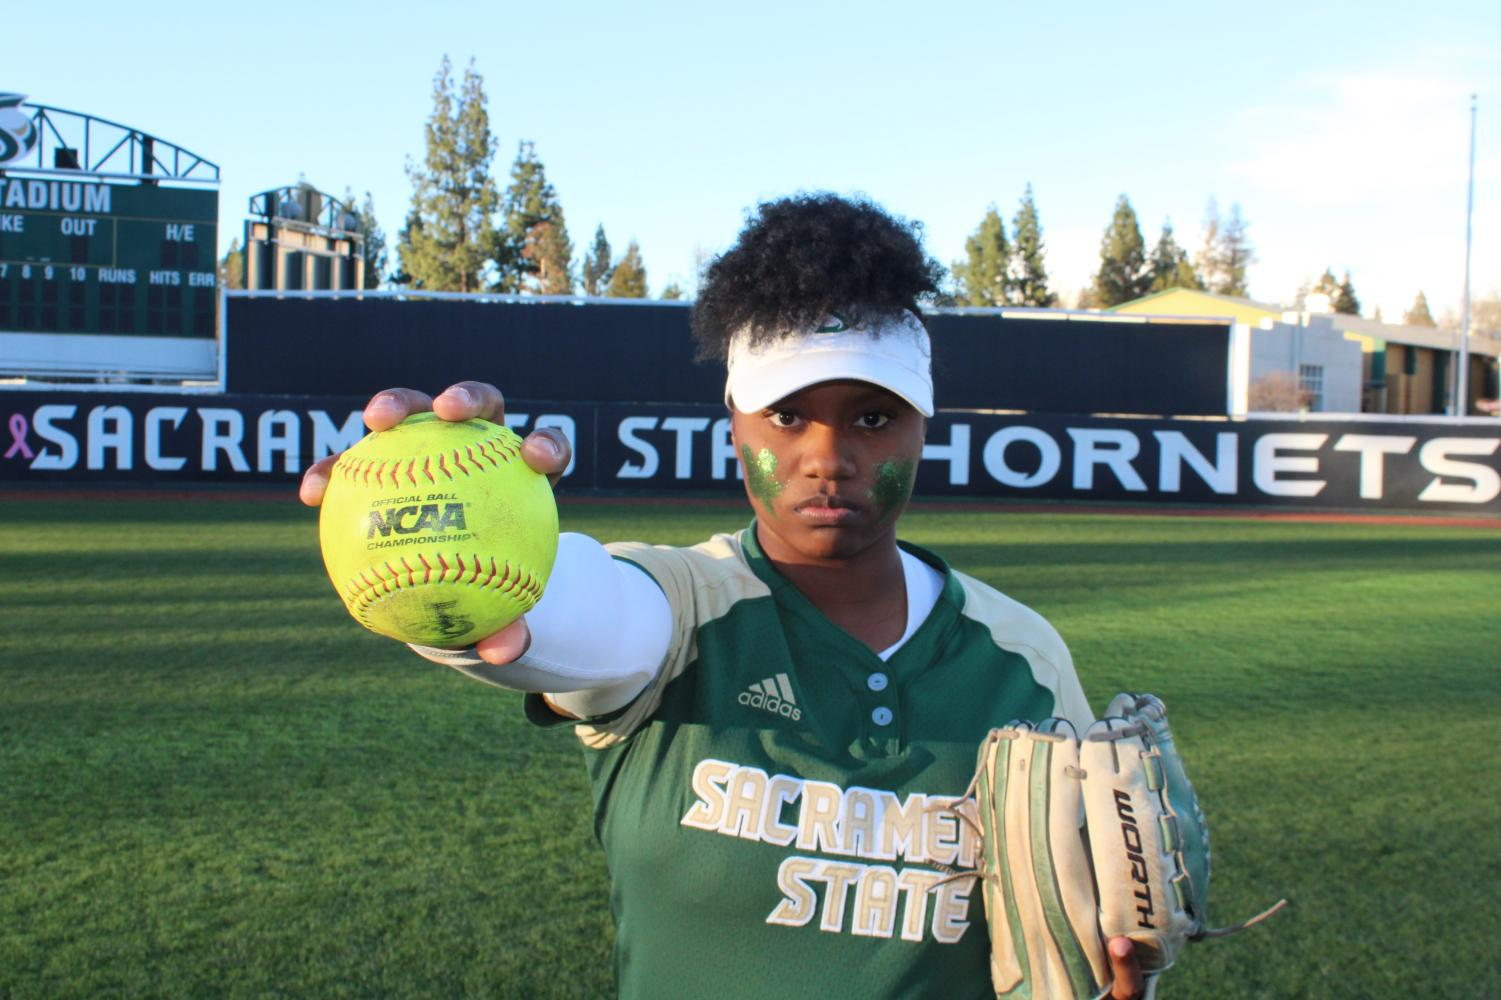 Sacramento State senior pitcher Celina Matthias won the Big Sky Conference Pitcher of the Year award during her sophomore season in 2016. After struggling through her junior year, Matthias made a vow to never make the same mistakes in the pitching circle again.